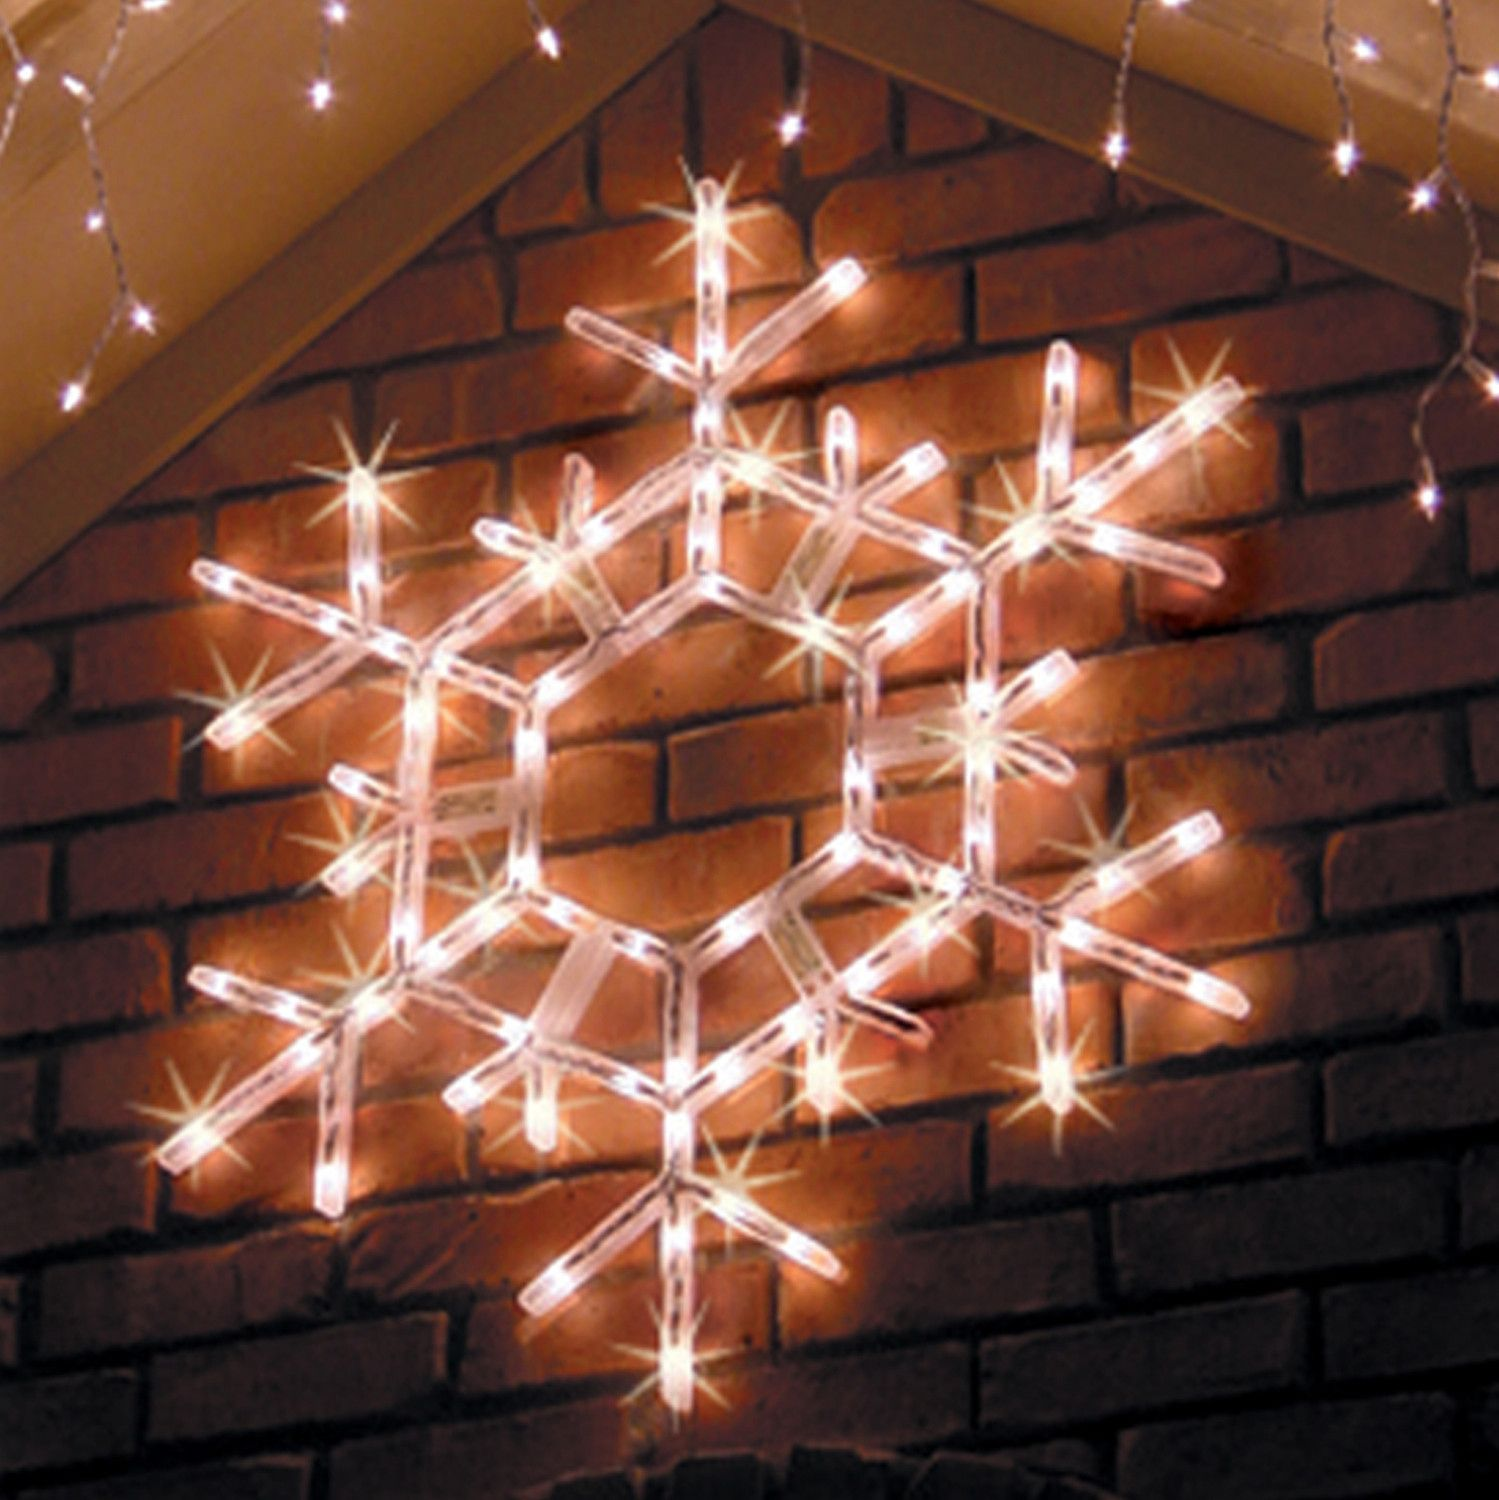 Lighted outdoor yard decorations yard decorations snowflake christmas decor lighted outdoor silhouettes aloadofball